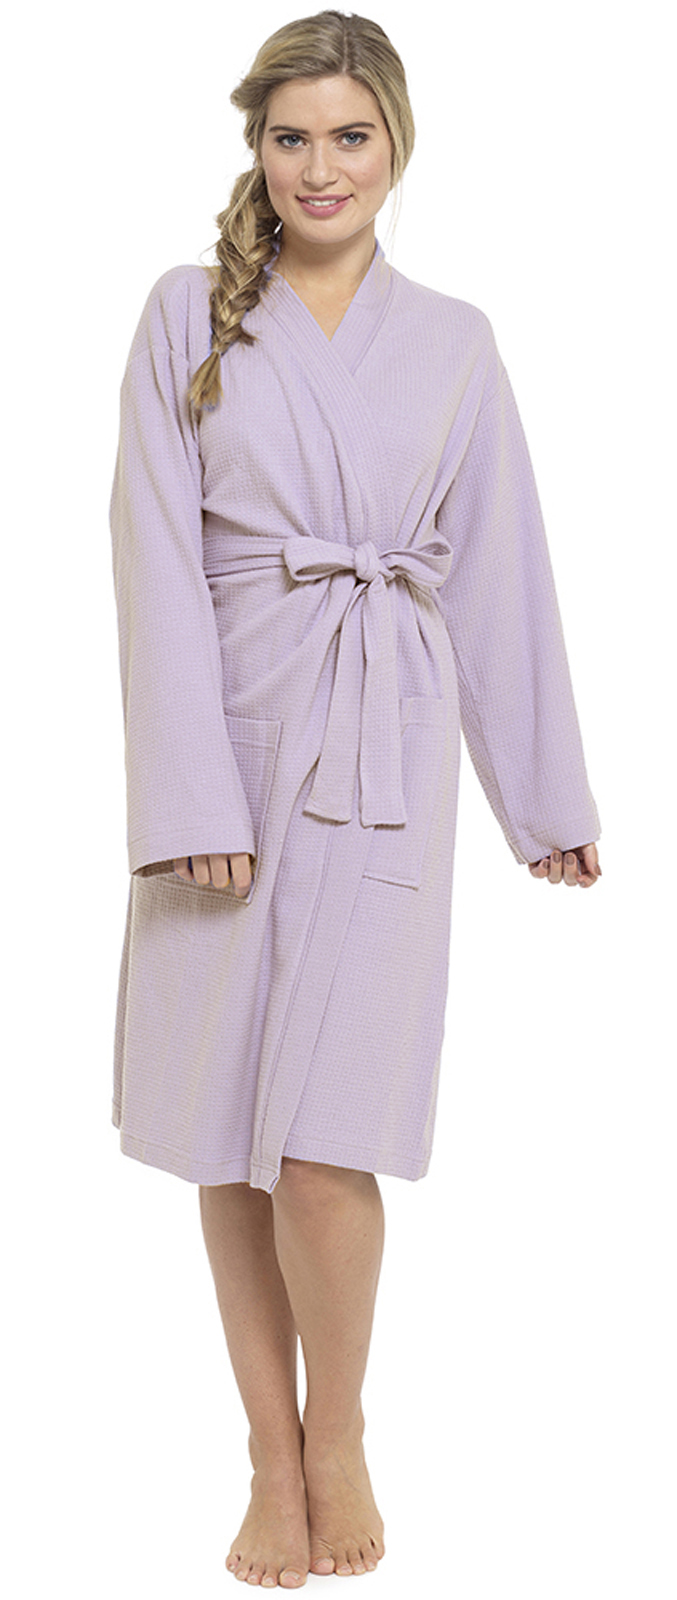 results for waffle cotton dressing gown Save waffle cotton dressing gown to get e-mail alerts and updates on your eBay Feed. Unfollow waffle cotton dressing gown to .